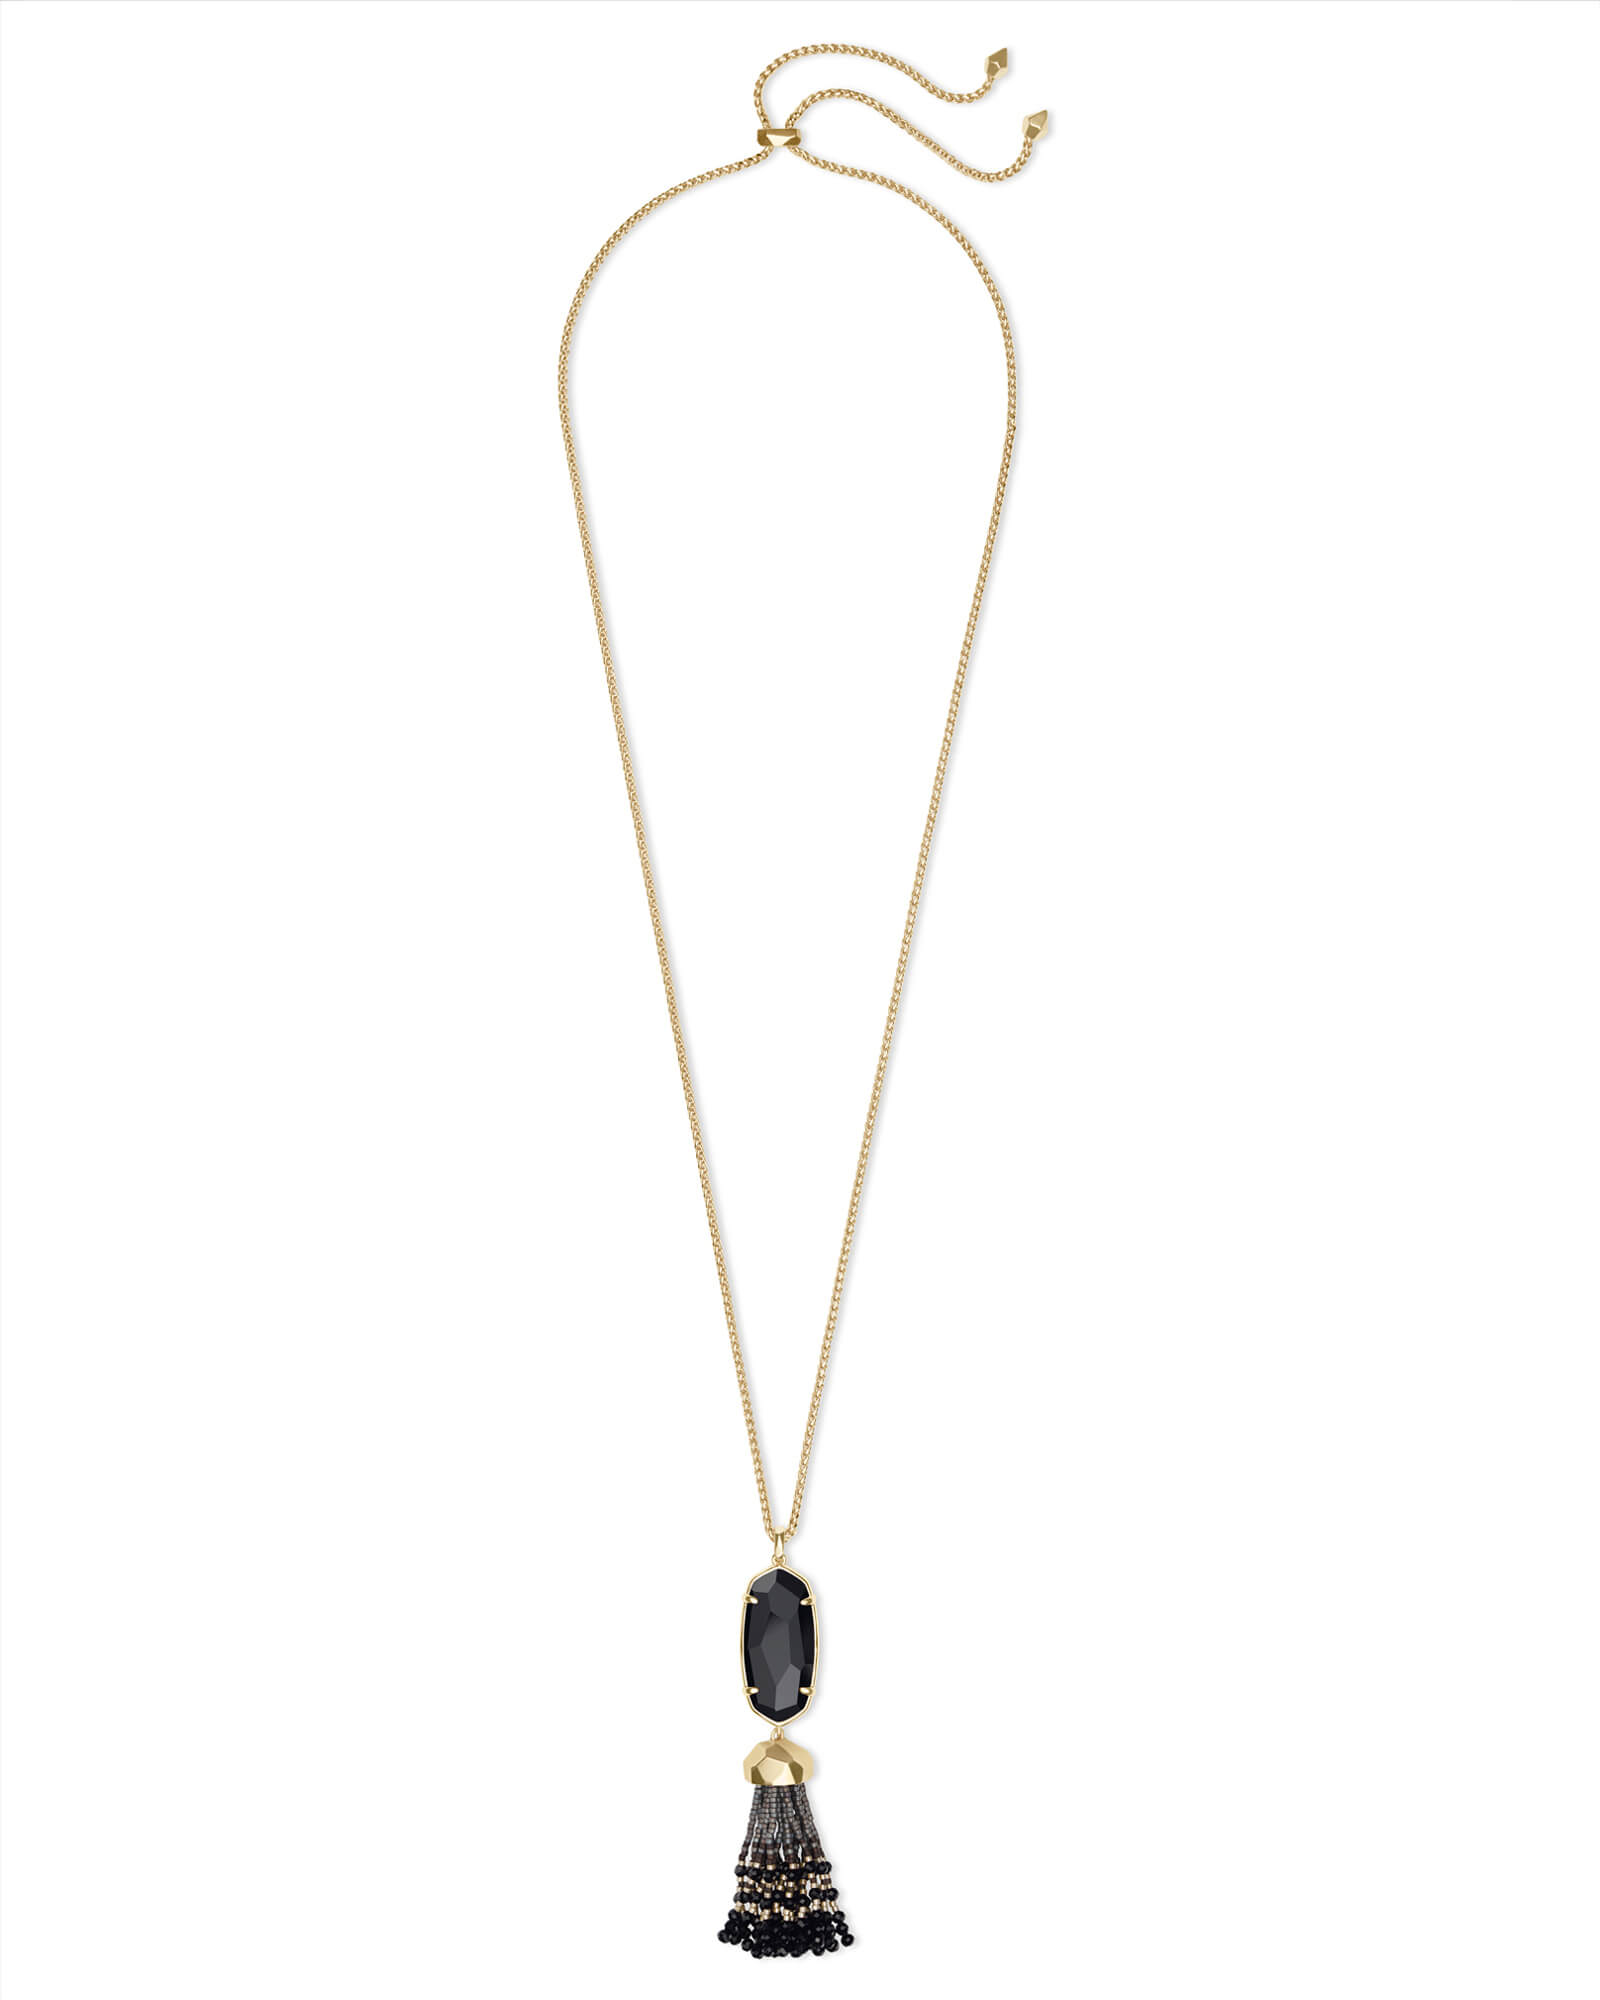 Eva Gold Long Pendant Necklace in Black Opaque Glass